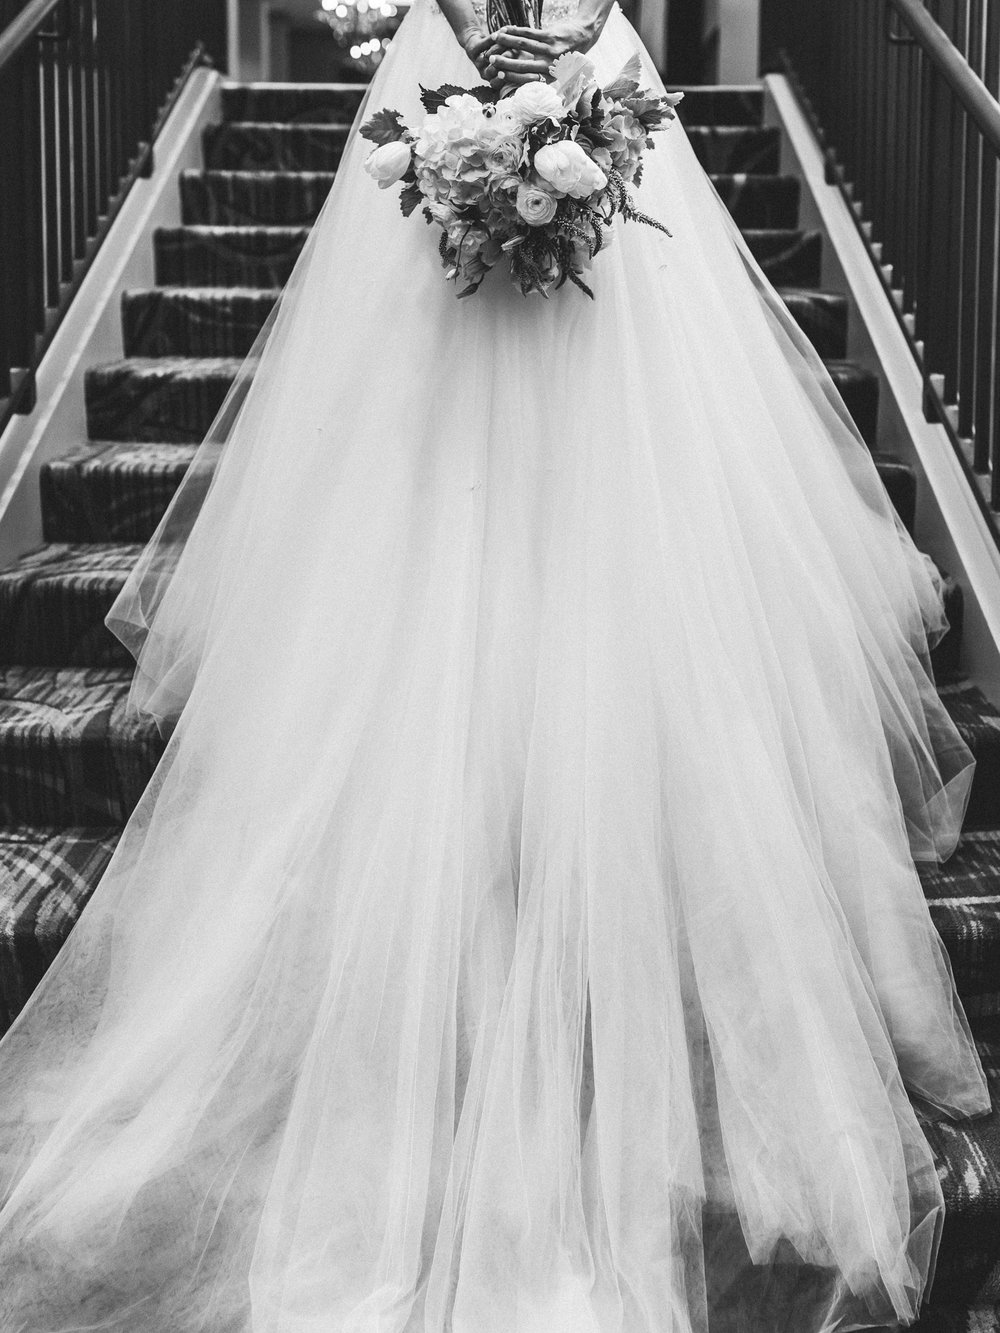 WEDDINGS - Frequently Asked Questions